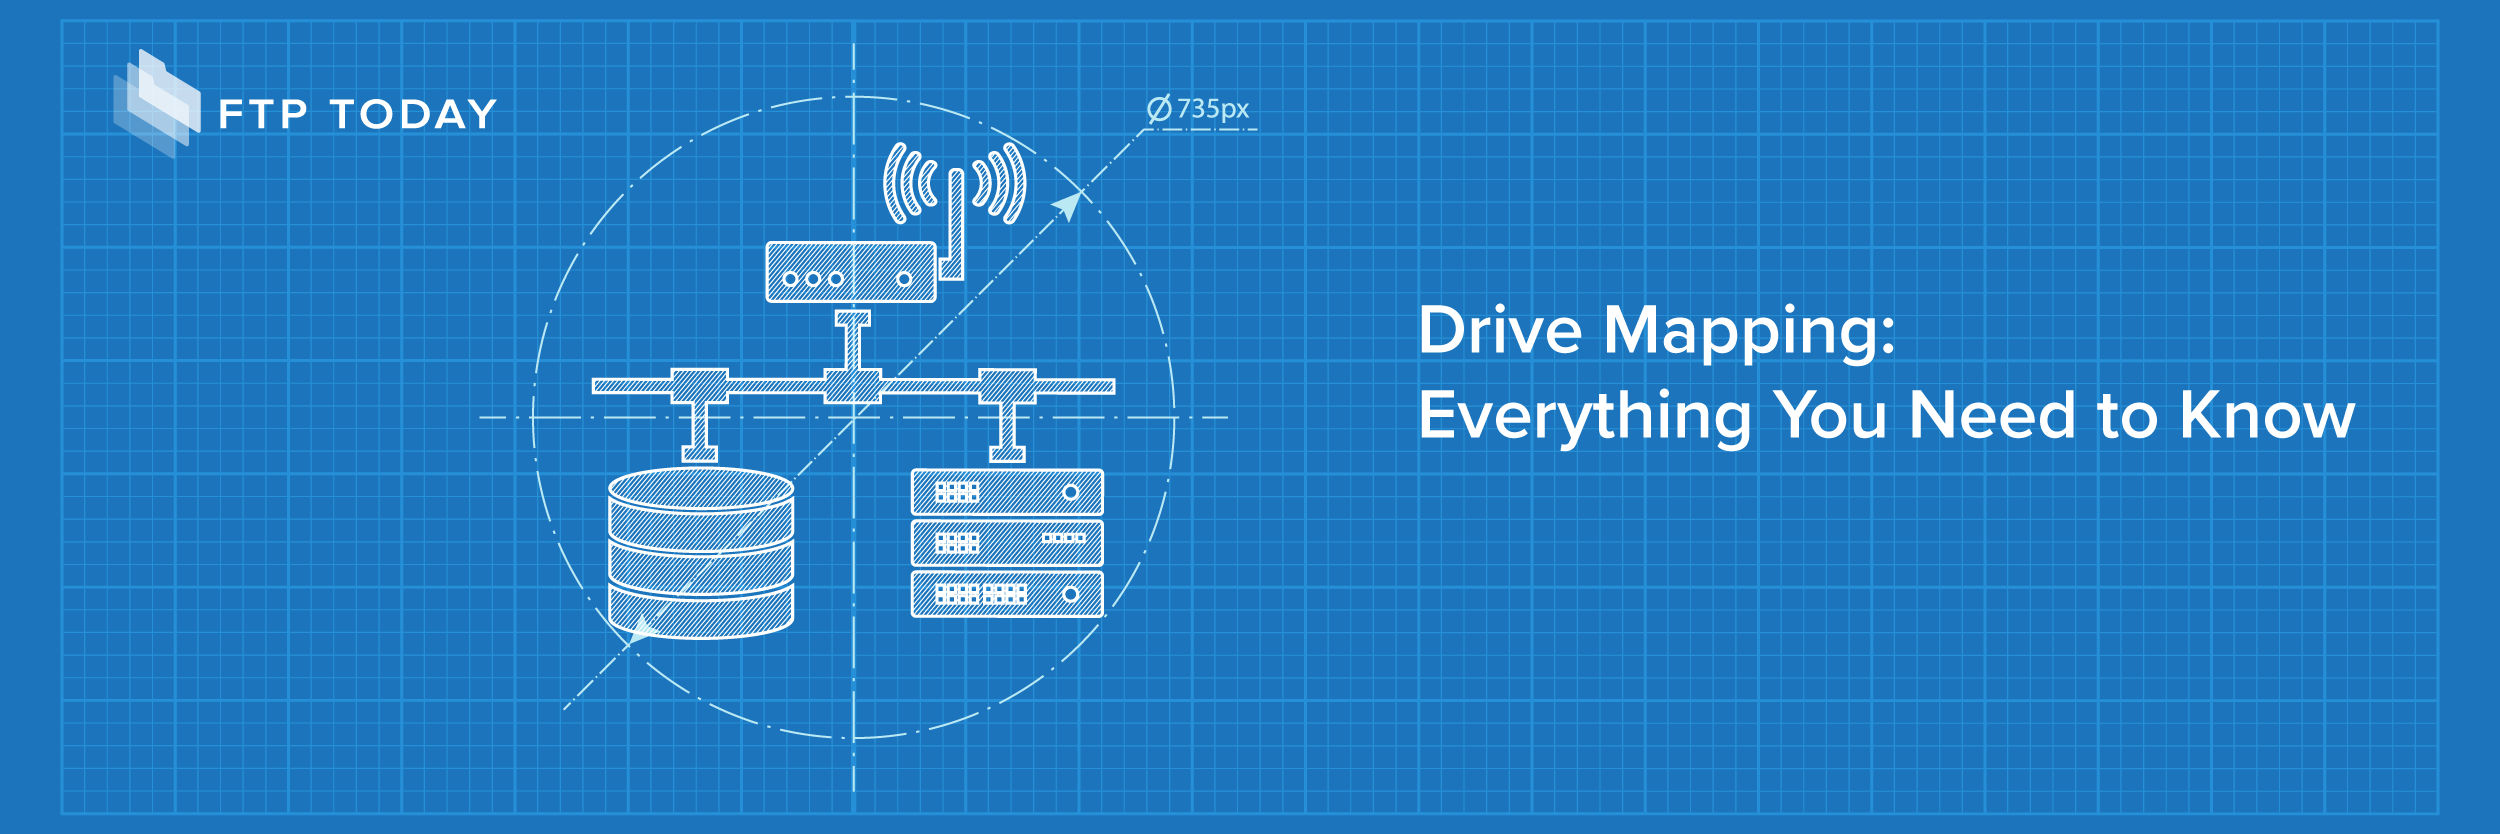 Drive Mapping: Everything You Need to Know